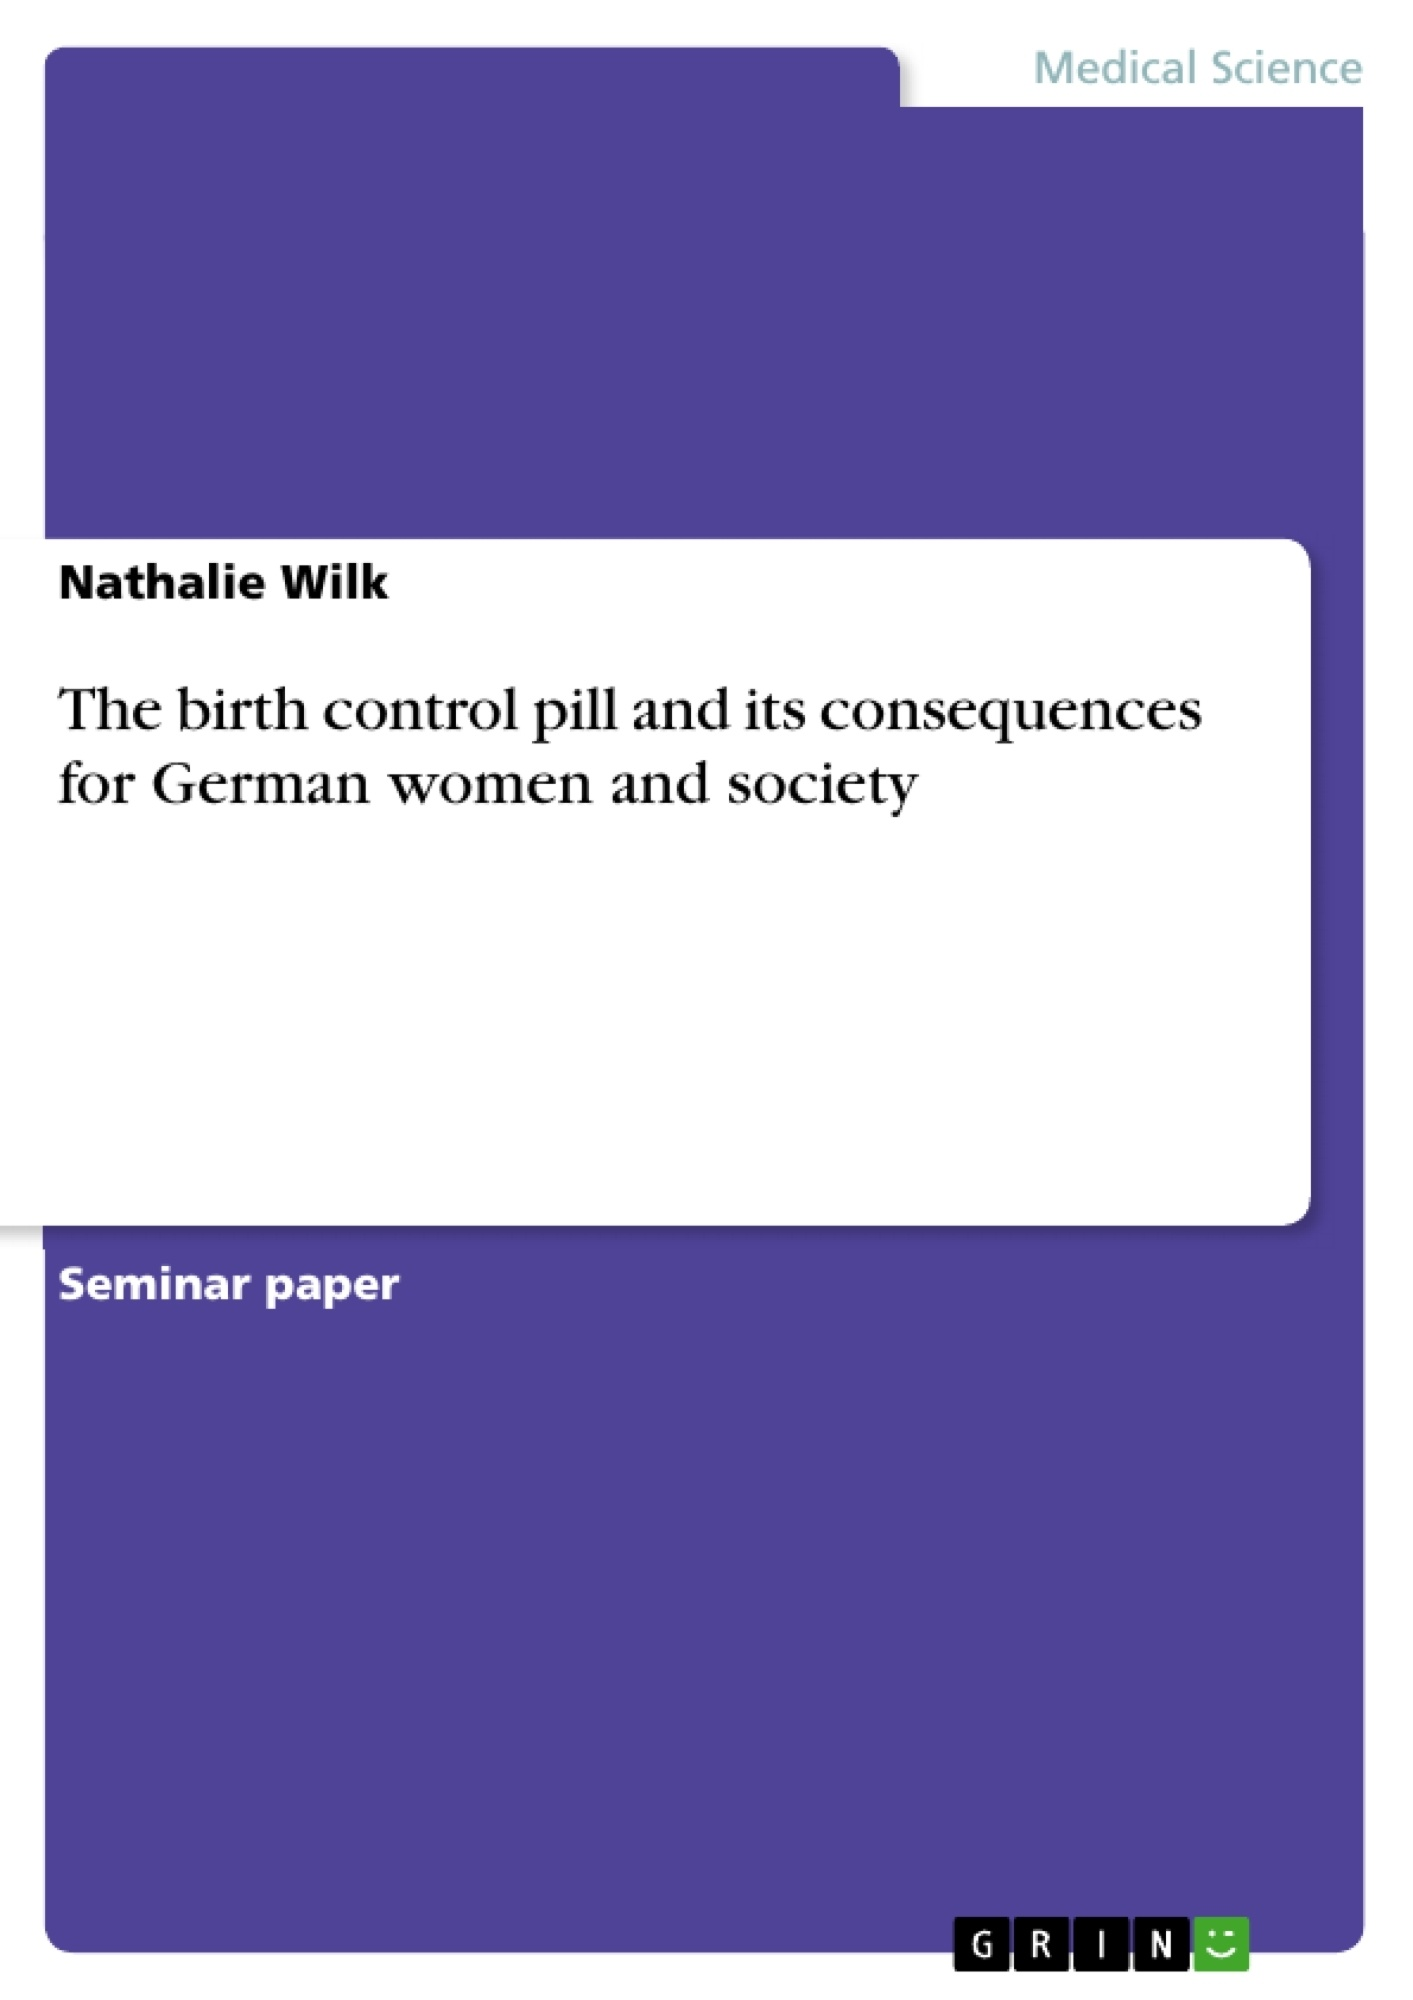 Title: The birth control pill and its consequences for German women and society